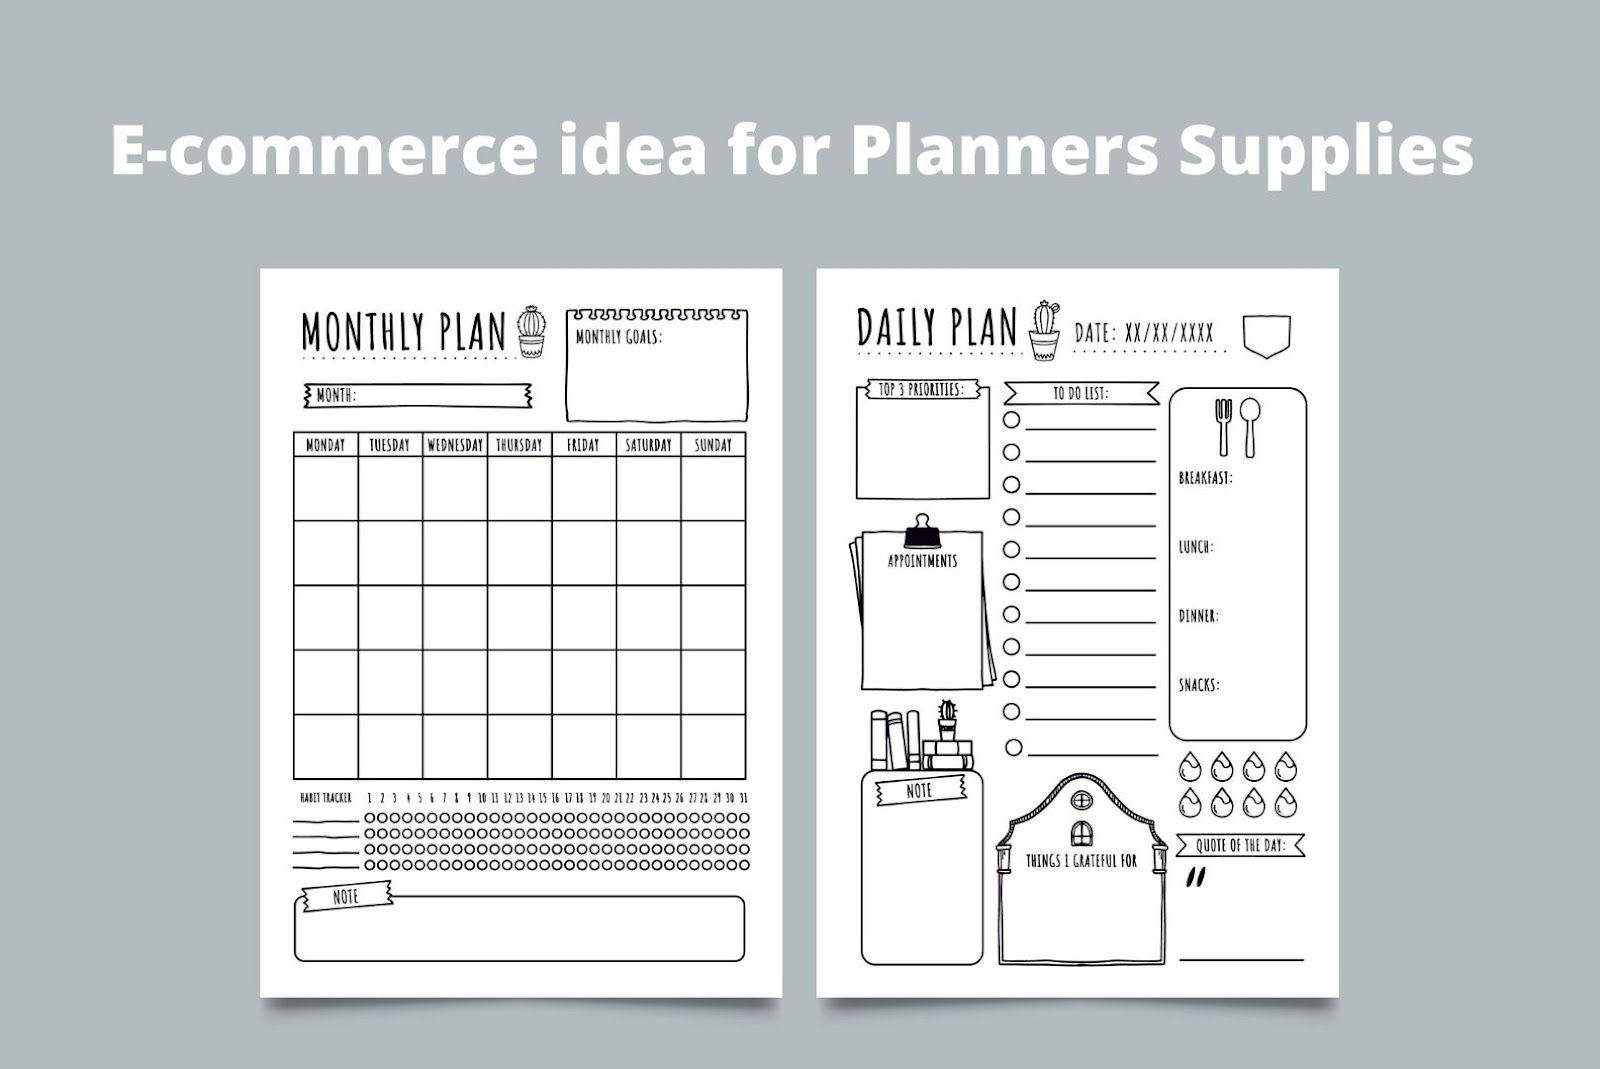 E-commerce ideas for Planners Supplies